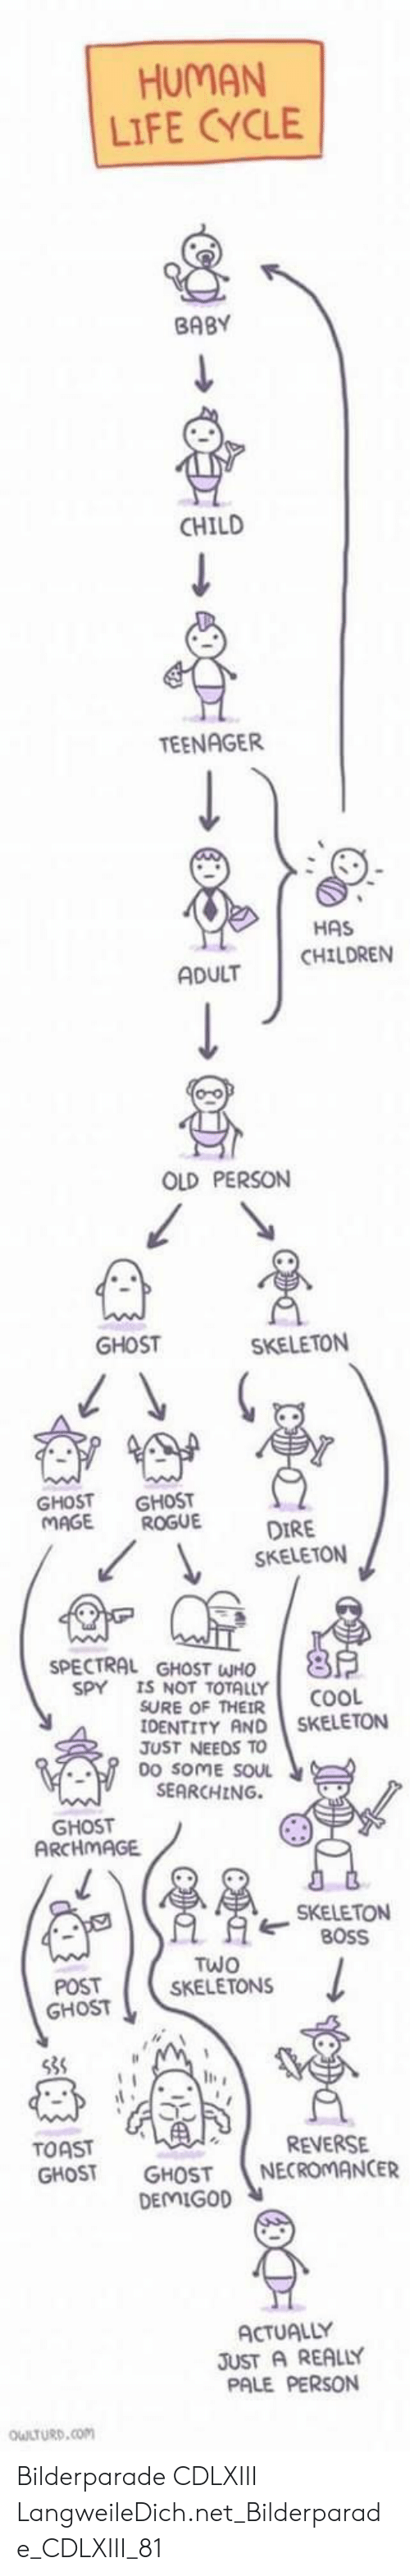 dire: HUMAN  LIFE CYCLE  BABY  CHILD  TEENAGER  HAS  ADULT CHILDREN  OLD PERSON  GHOST  SKELETON  GHOST GHOST  MAGE ROGU  DIRE  SKELETON  SPECTRAL GHOST WHO  SPY  IS NOT TOTALLY  SURE OF THEIR  IDENTITY AND SKELETON  JUST NEEDS TO  0O SOME SOUL  COOL  SEARCHING.  GHOST  ARCHMAGE  SKELETON  ピBOSS  TWO  SKELETON!S  POST  GHOST  le  TOAST  GHOST GHOST NECROMANCER  REVERSE  DEMIGOD  ACTUALLY  JUST A REALLY  PALE PERSON  LTURD,Com Bilderparade CDLXIII LangweileDich.net_Bilderparade_CDLXIII_81